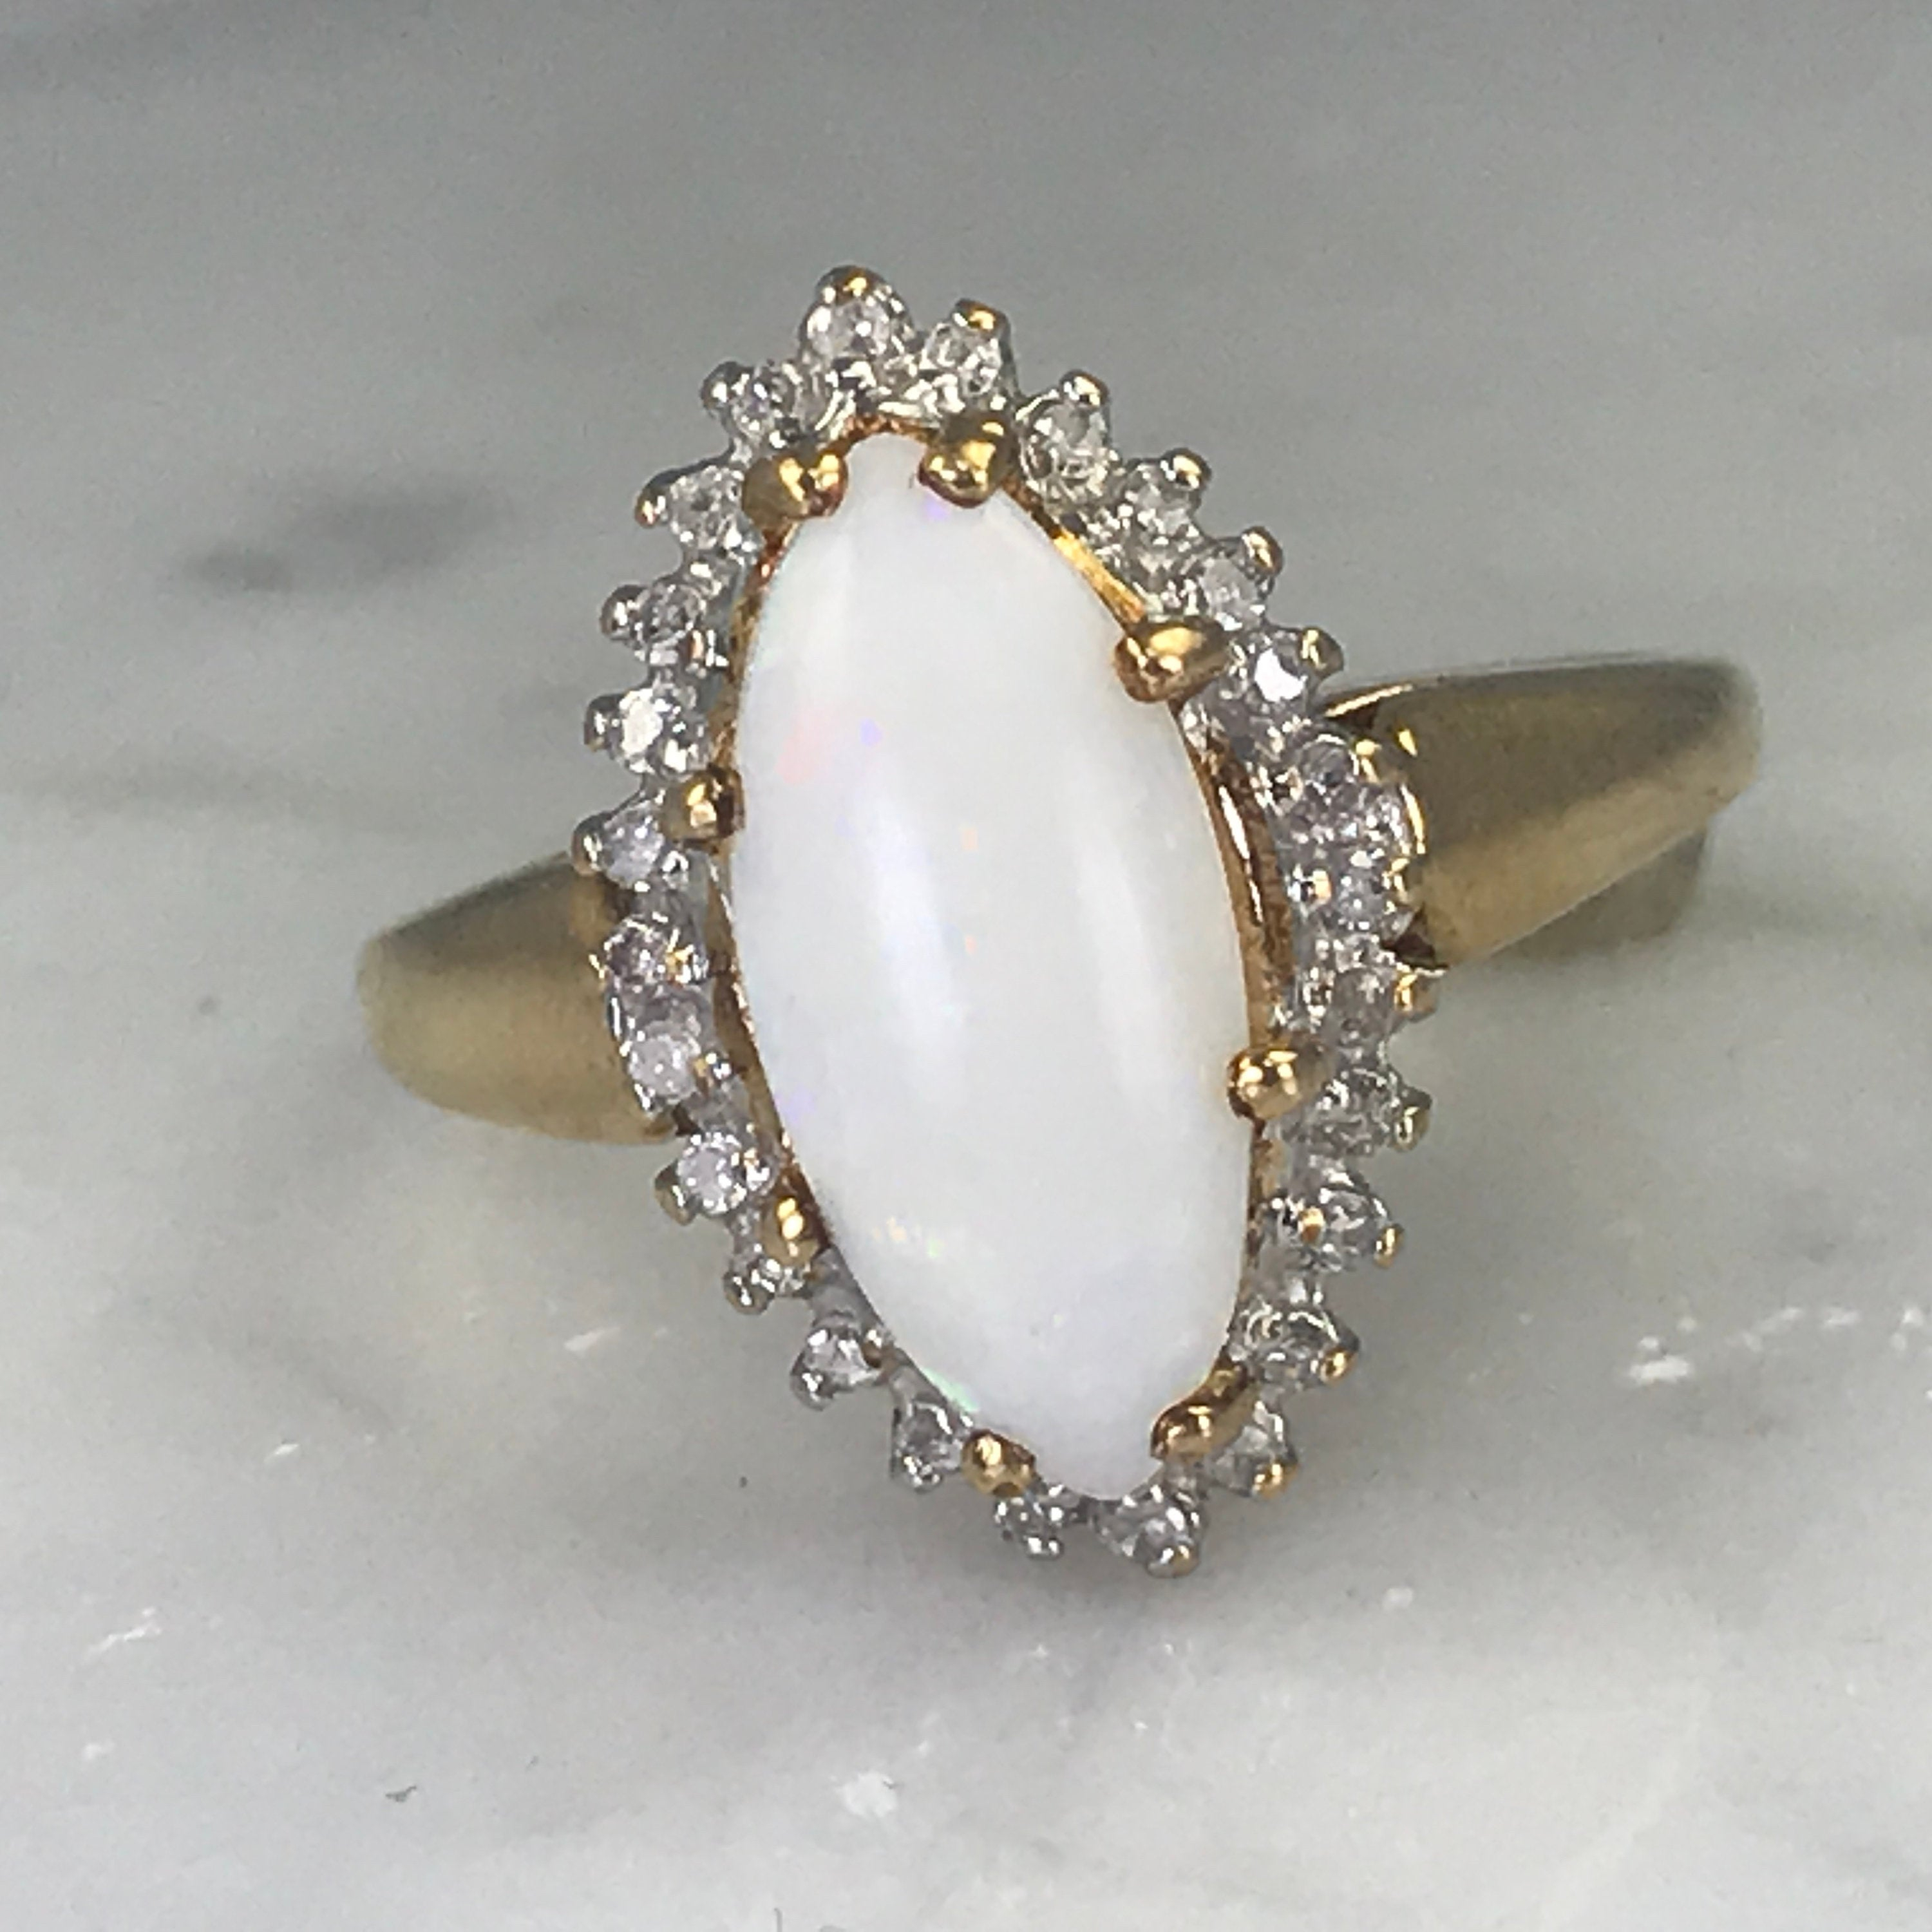 Opal Engagement Ring. Diamond Halo Ring. 10k Gold (View 10 of 25)